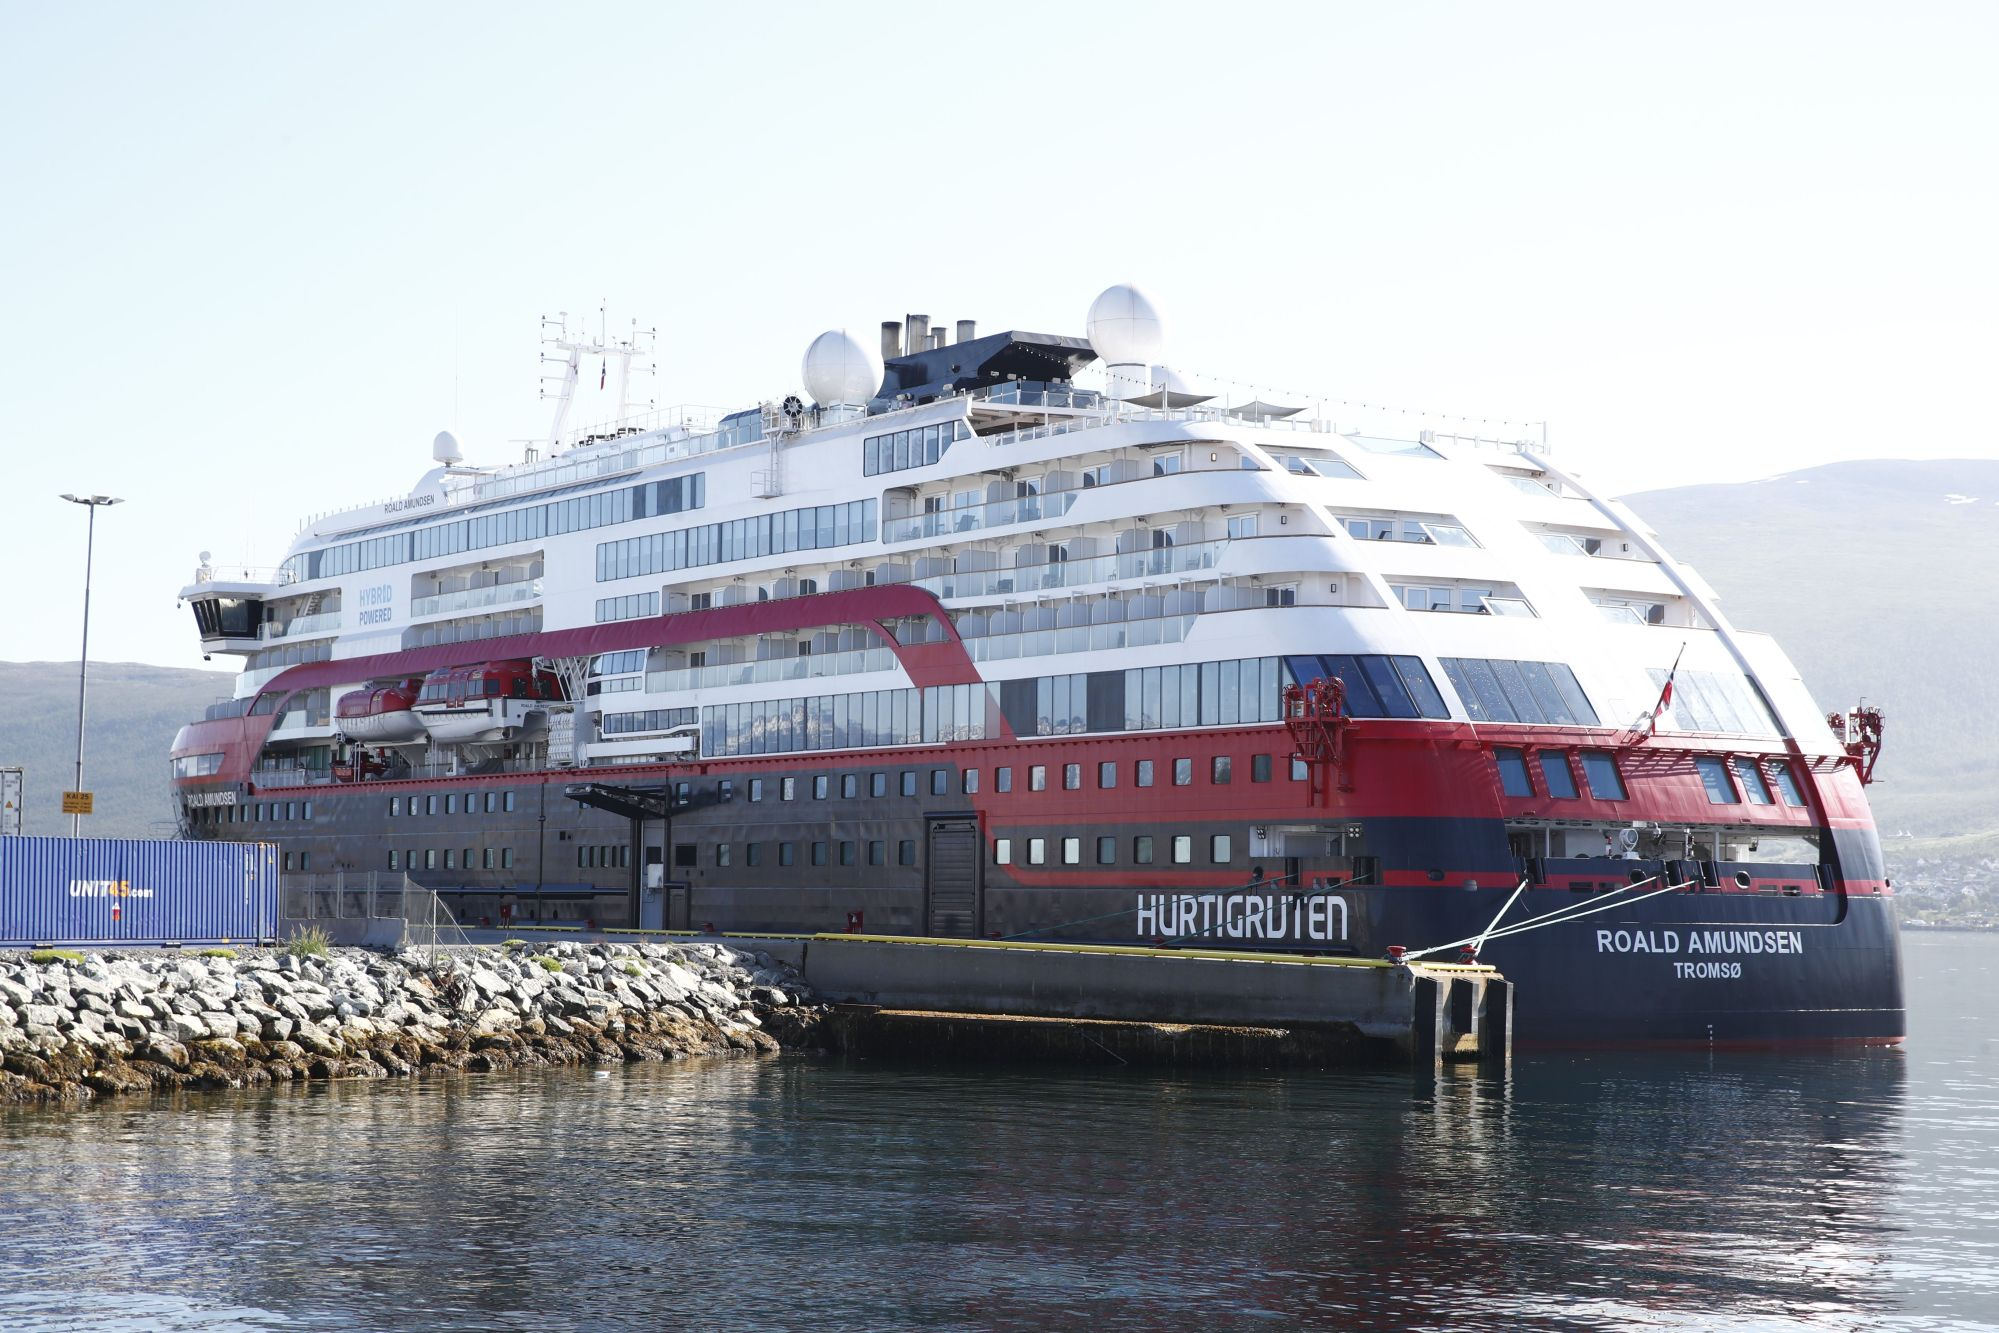 The Hurtigruten ship Roald Amundsen is moored on August 3, 2020 in Breivika, in Tromsø, northern Norway, following an outbreak of the novel coronavirus (Covid-19)on board the ship. (TERJE PEDERSEN/NTB Scanpix/AFP via Getty Images)